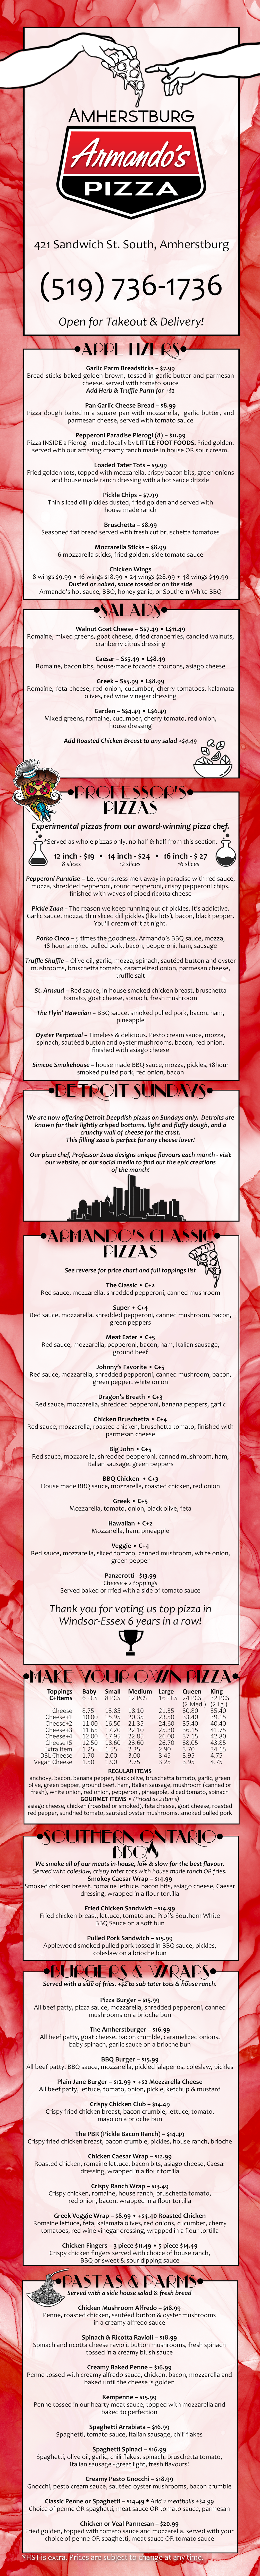 Armando's Amherstburg Takeout and Delivery Menu featuring Professor Zaaa pizzas, sandwiches, wraps, smoked BBQ, pasta dishes